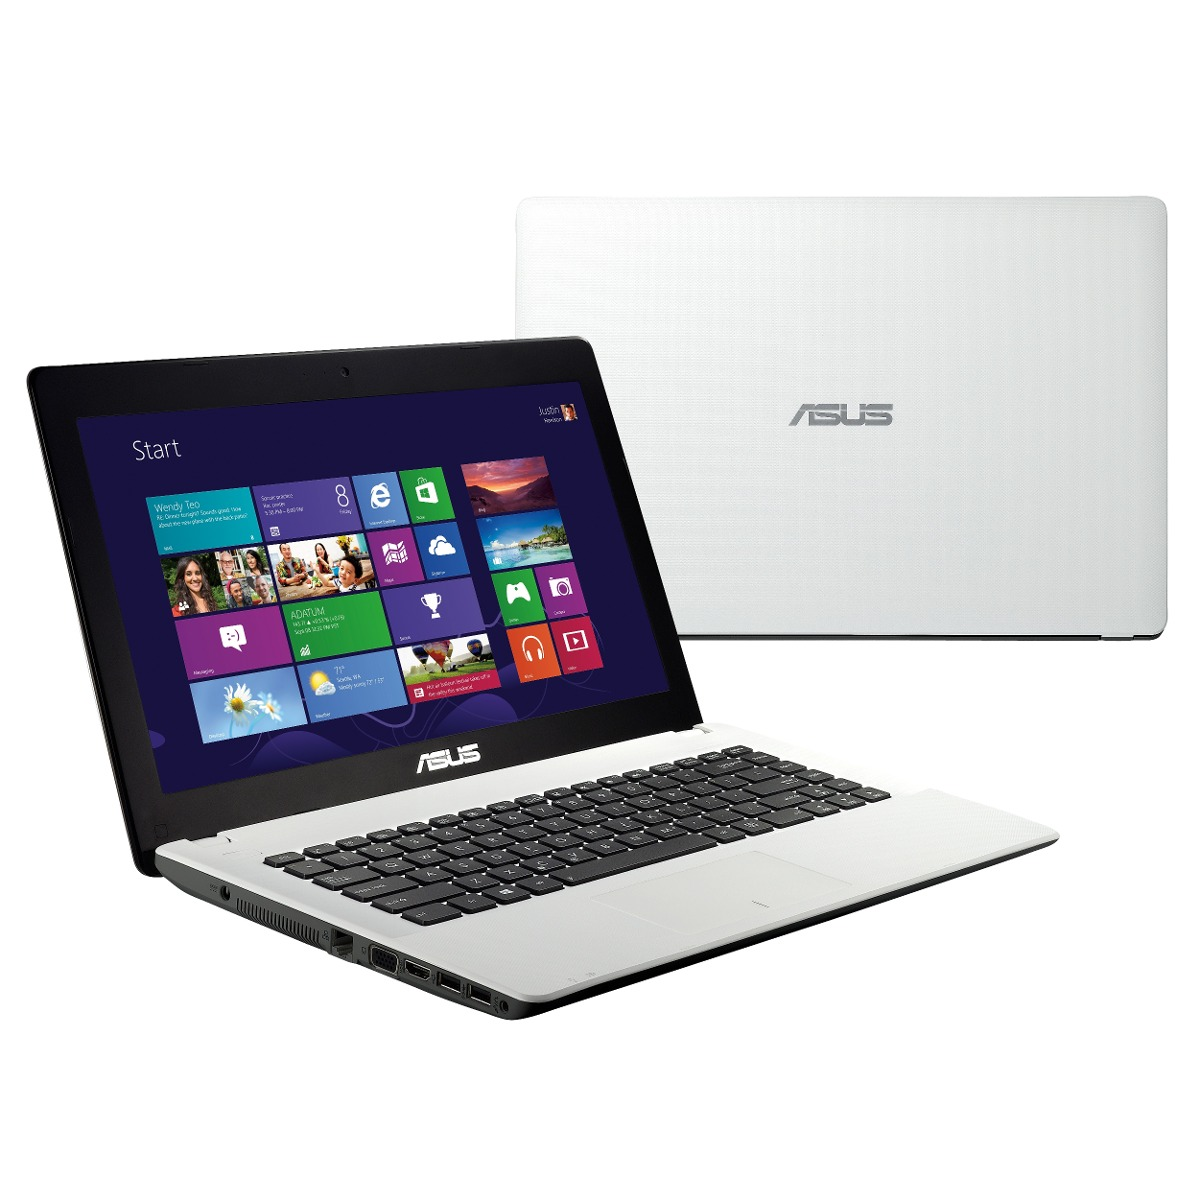 Asus X453m Specifications And Price Newest Red Bunglon Notebook Hasil Gambar Untuk